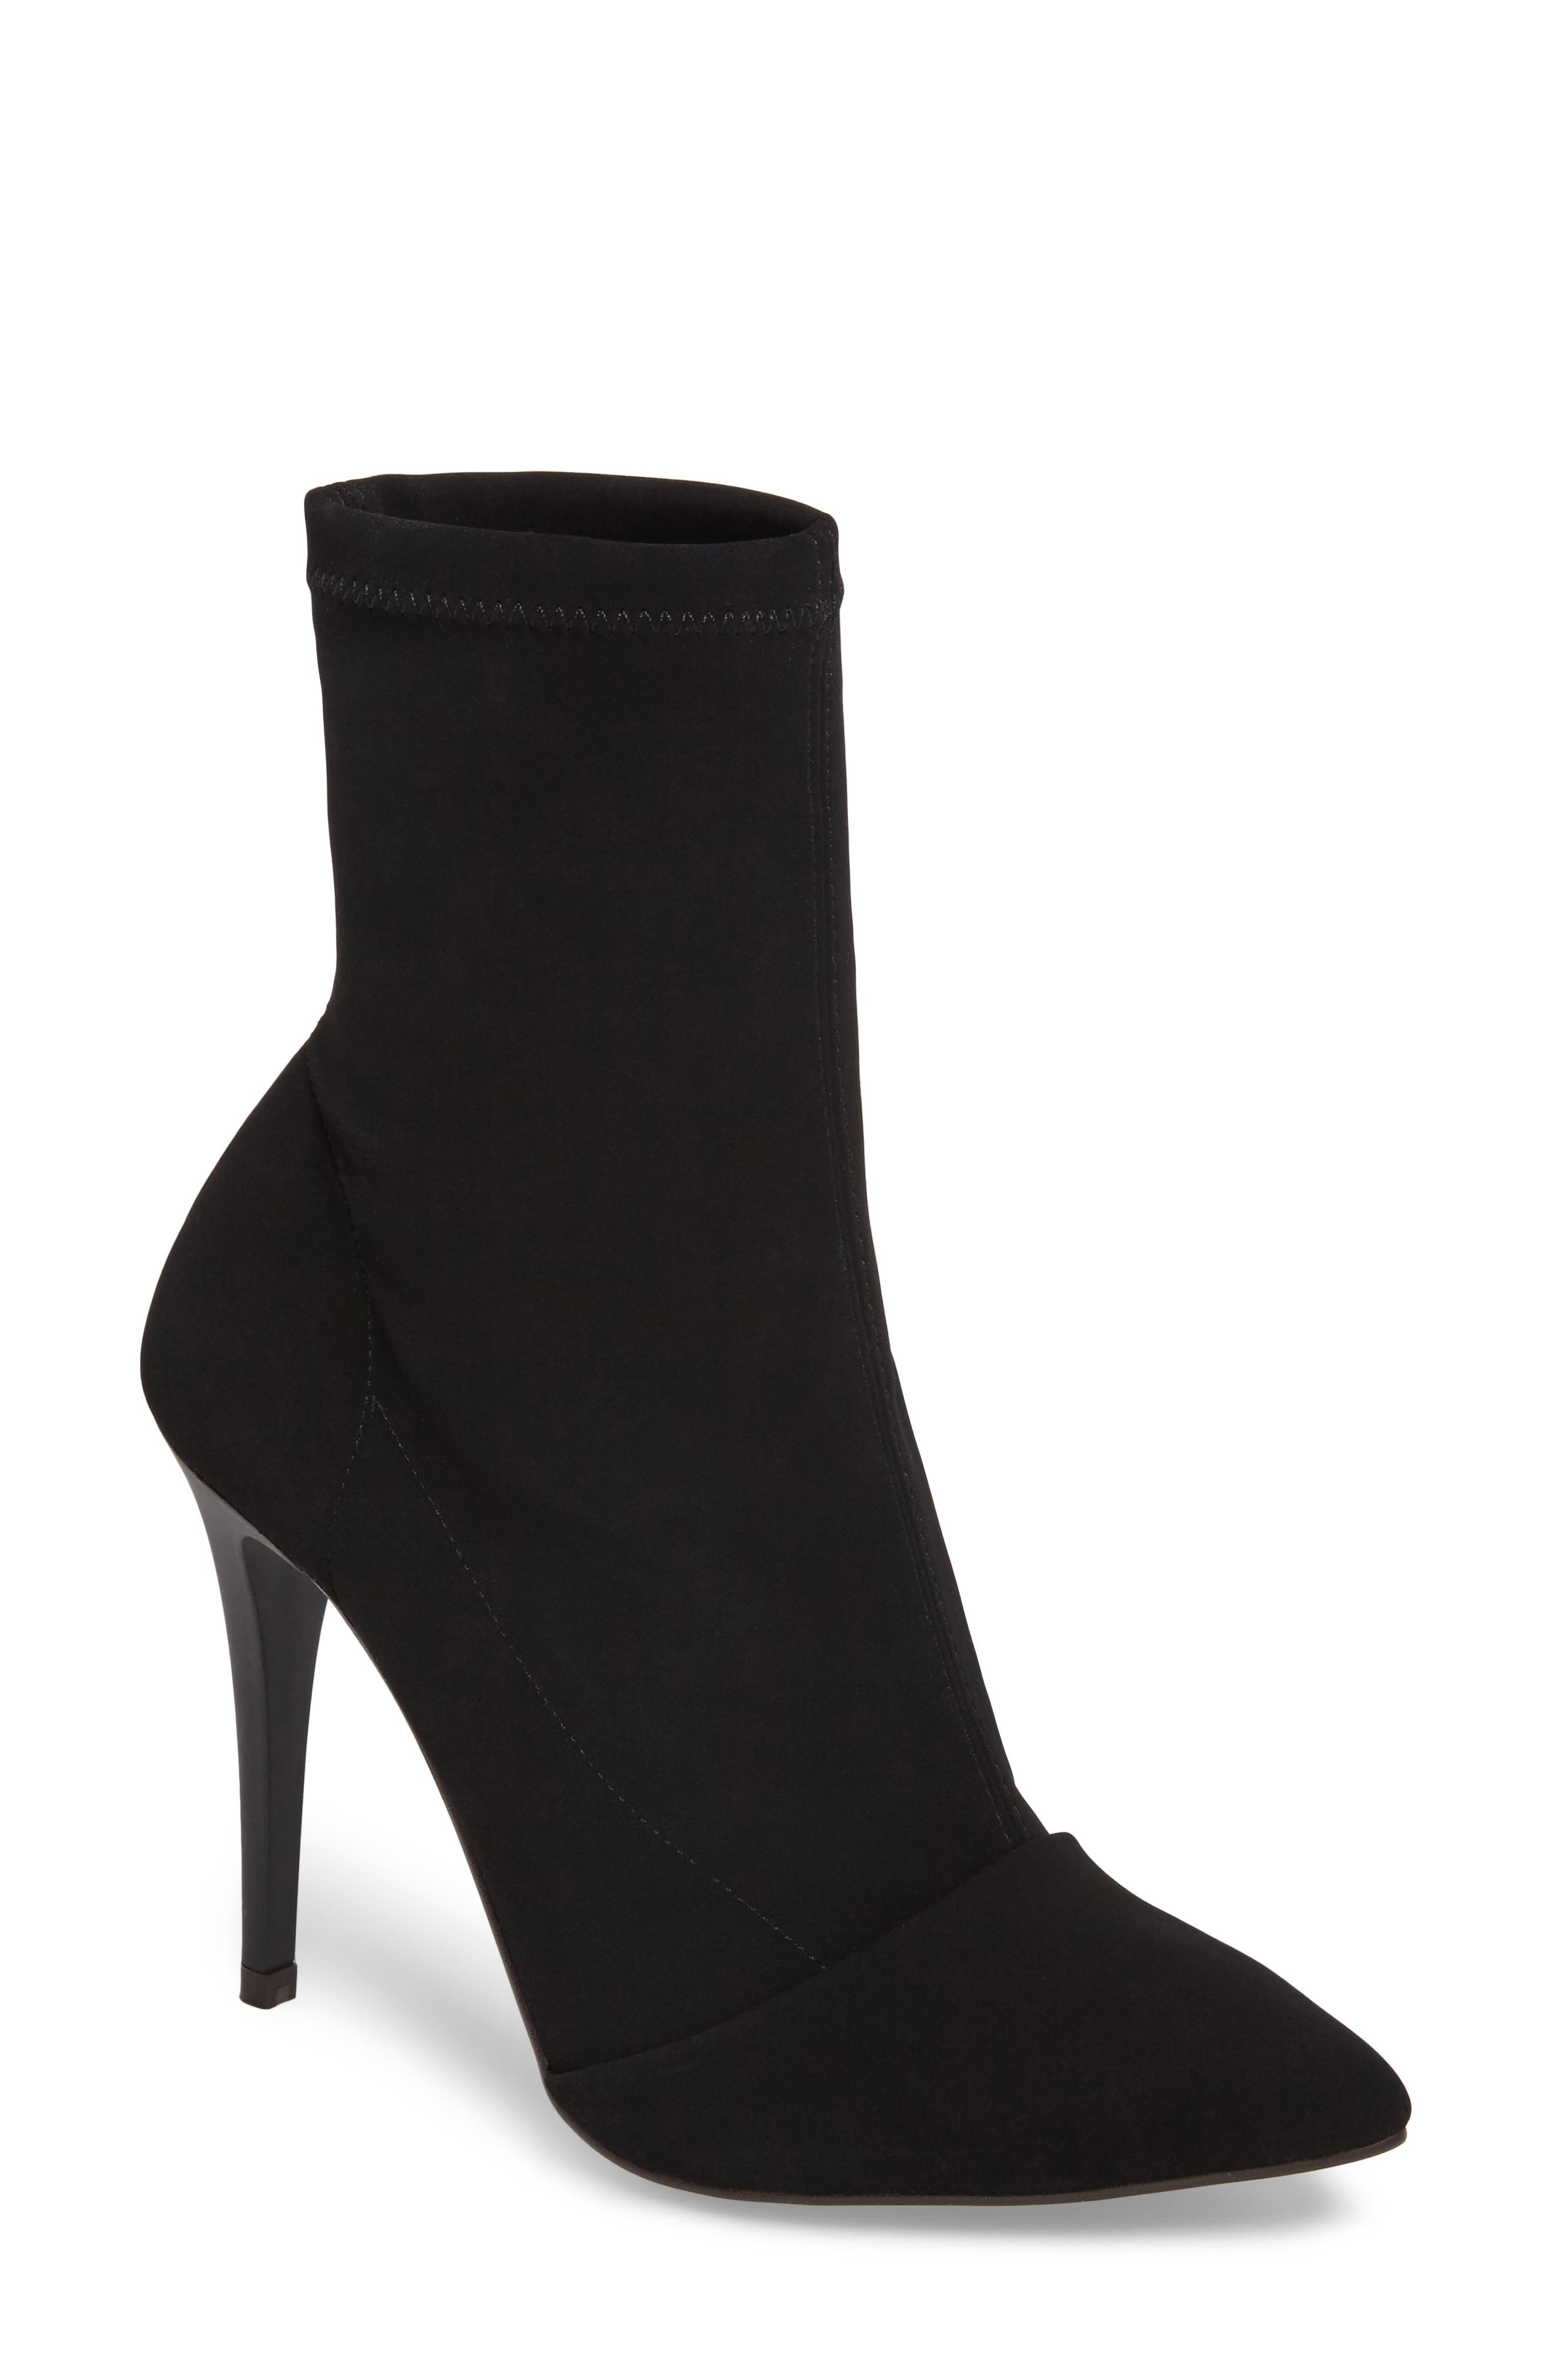 Hubba Pointy Toe Bootie,                             Main thumbnail 1, color,                             001